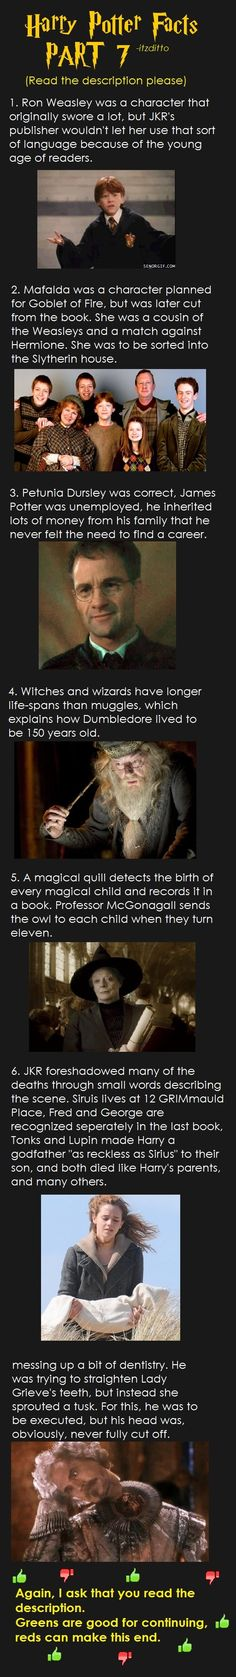 Harry Potter Facts Part 7 - #7 got cut off, but it was about Nearly Headless Nick if you didn't figure it out yourself :)